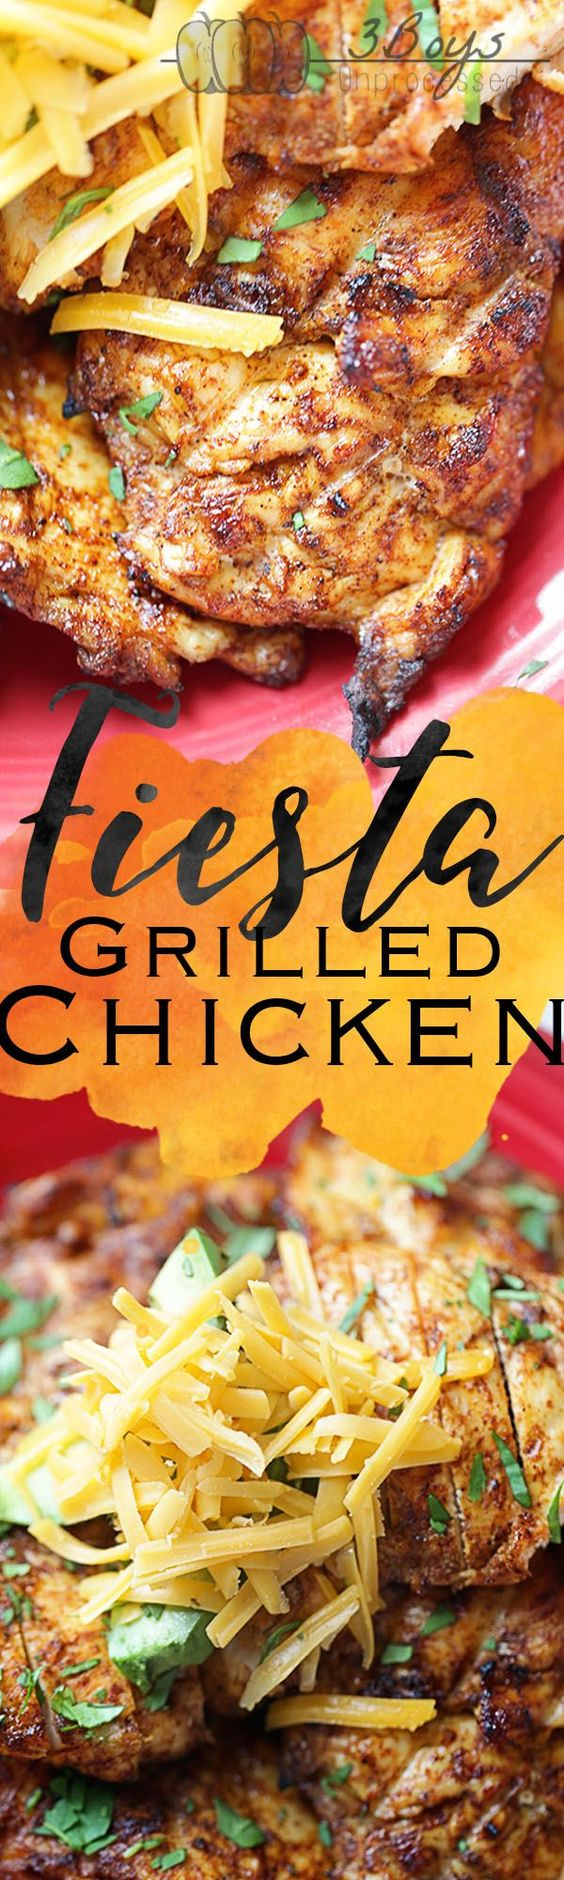 The perfect summertime grilling recipe! Boneless, skinless chicken topped with…